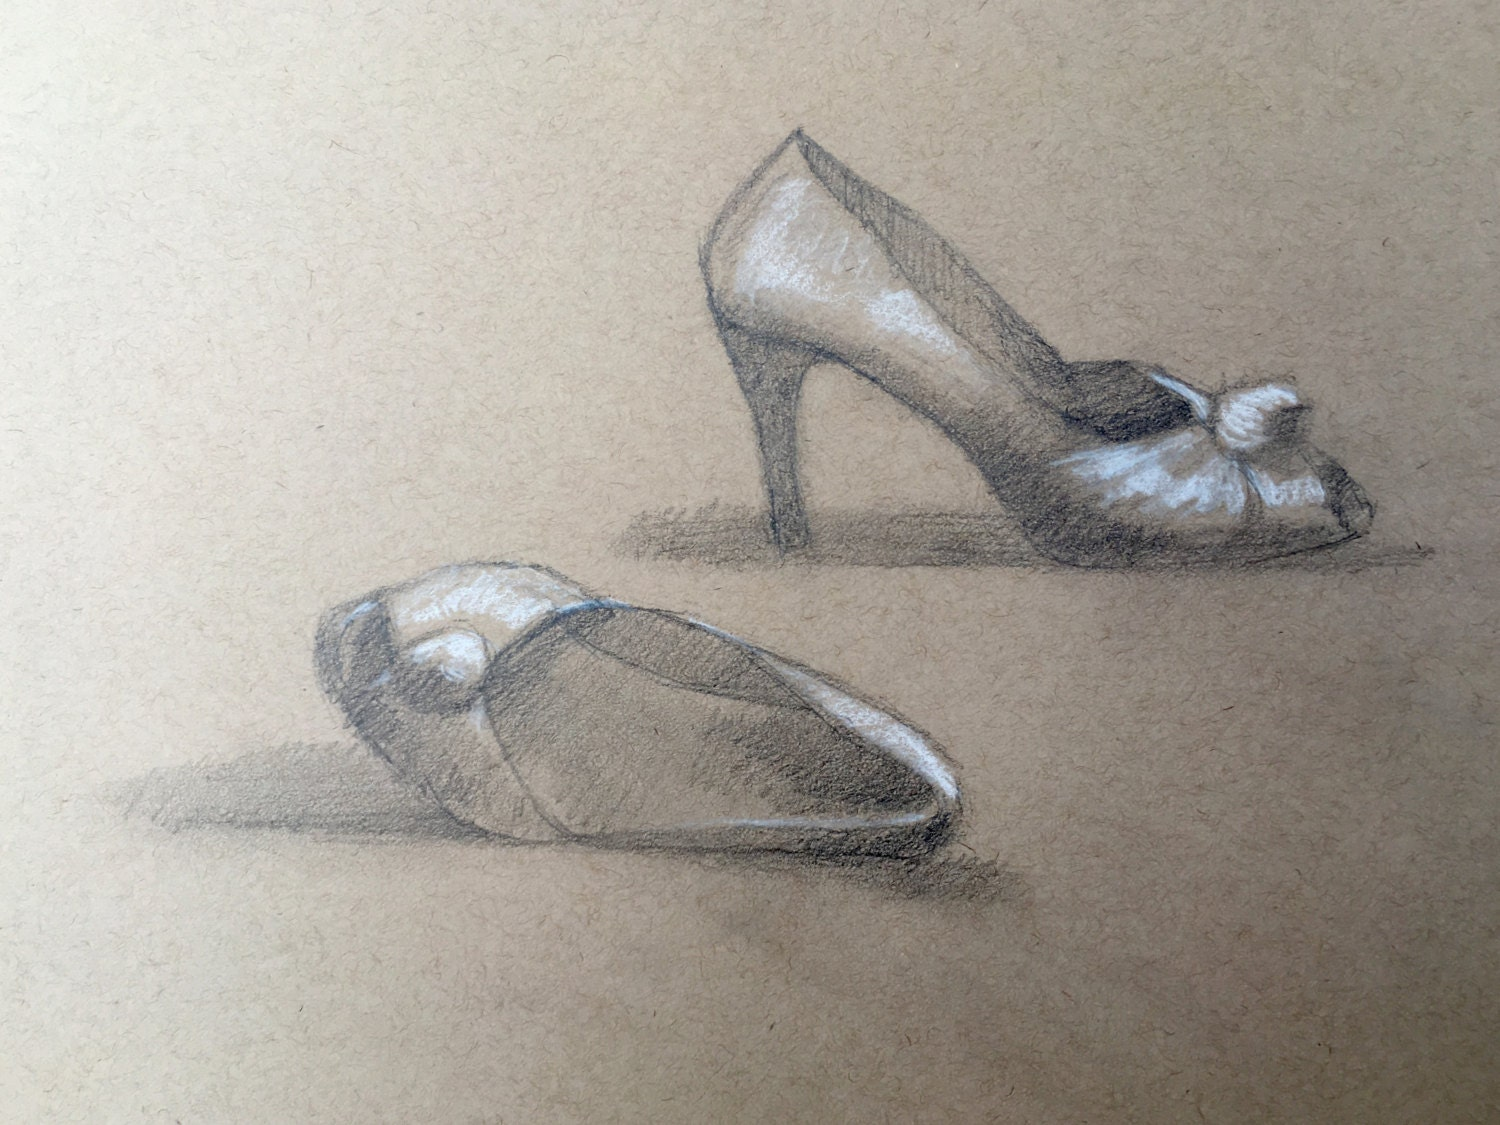 Nature morte dessin chaussures de caroline dessin - Dessin de nature morte ...